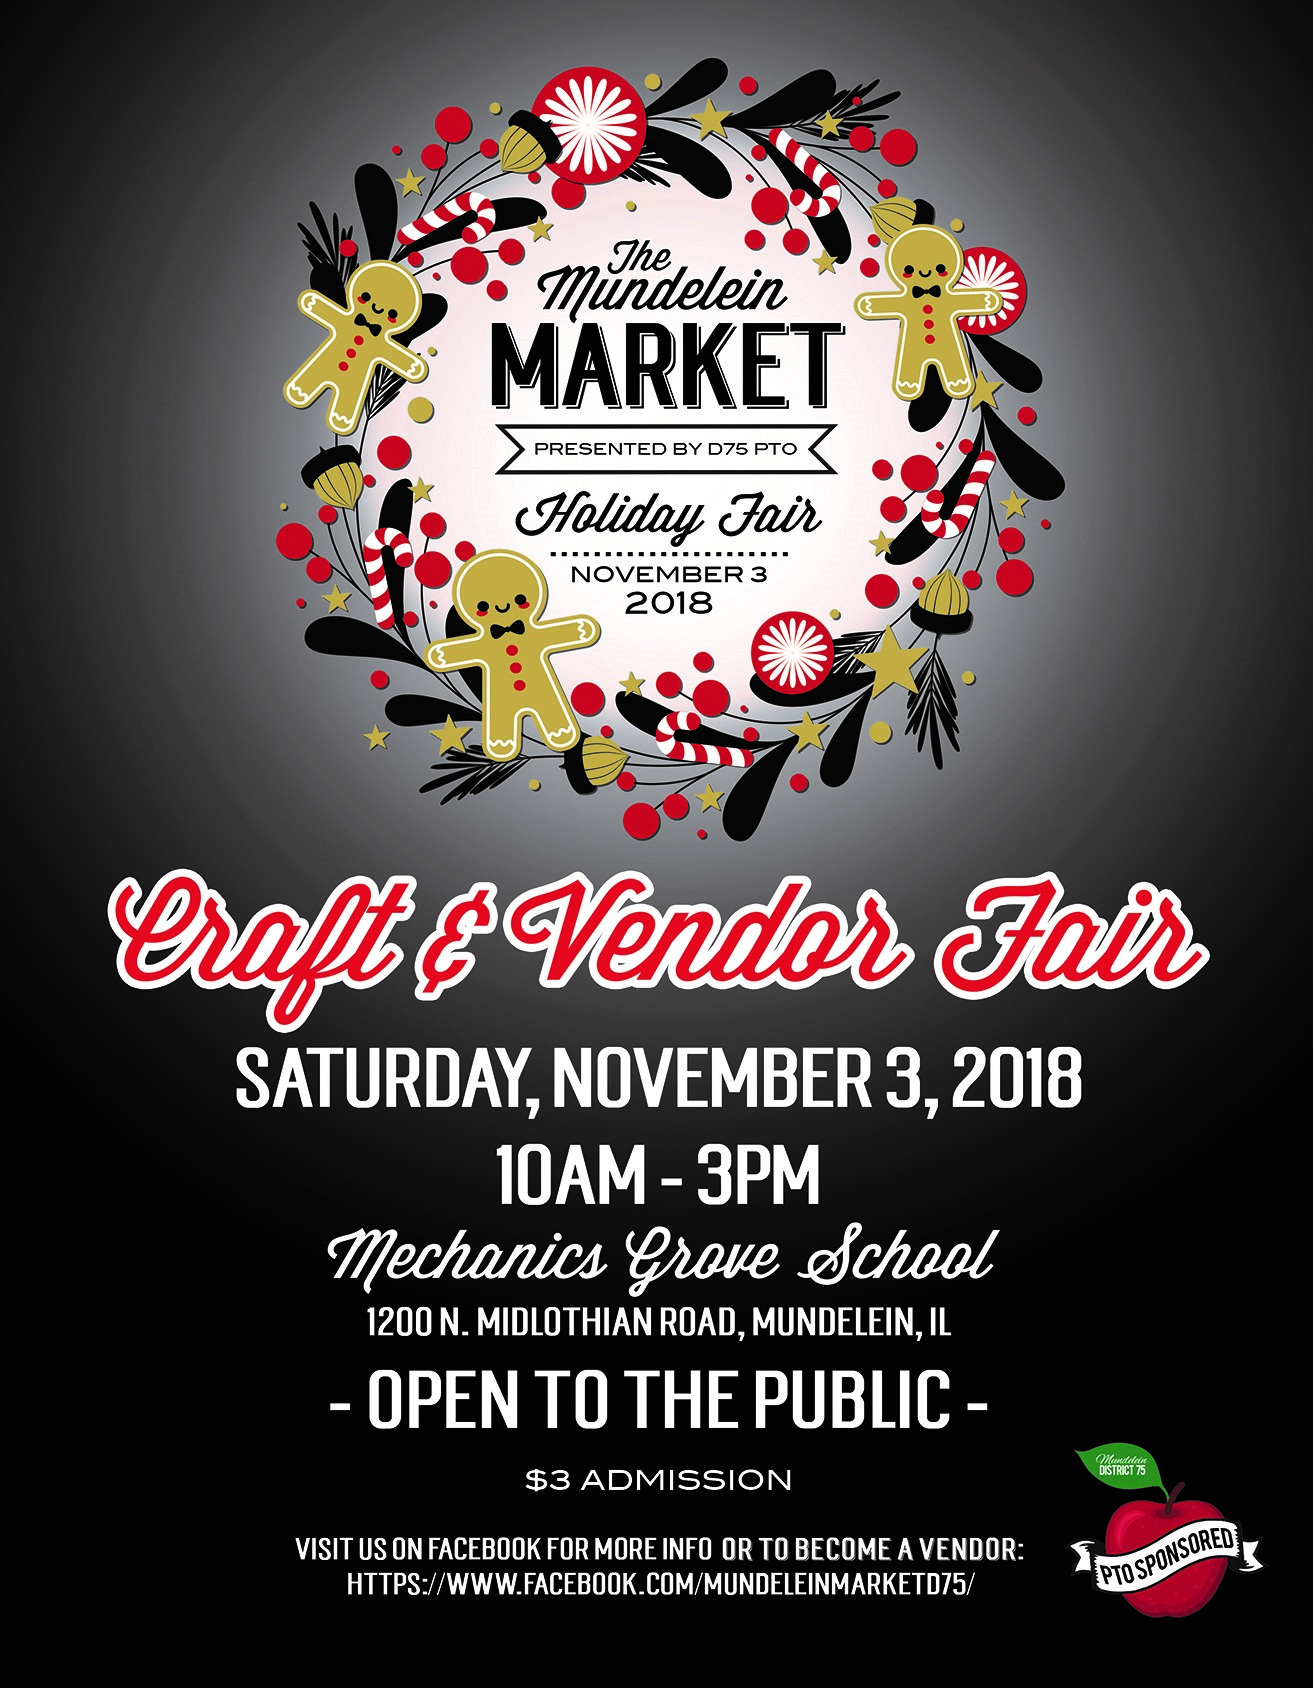 The Mundelein Market Holiday Fair